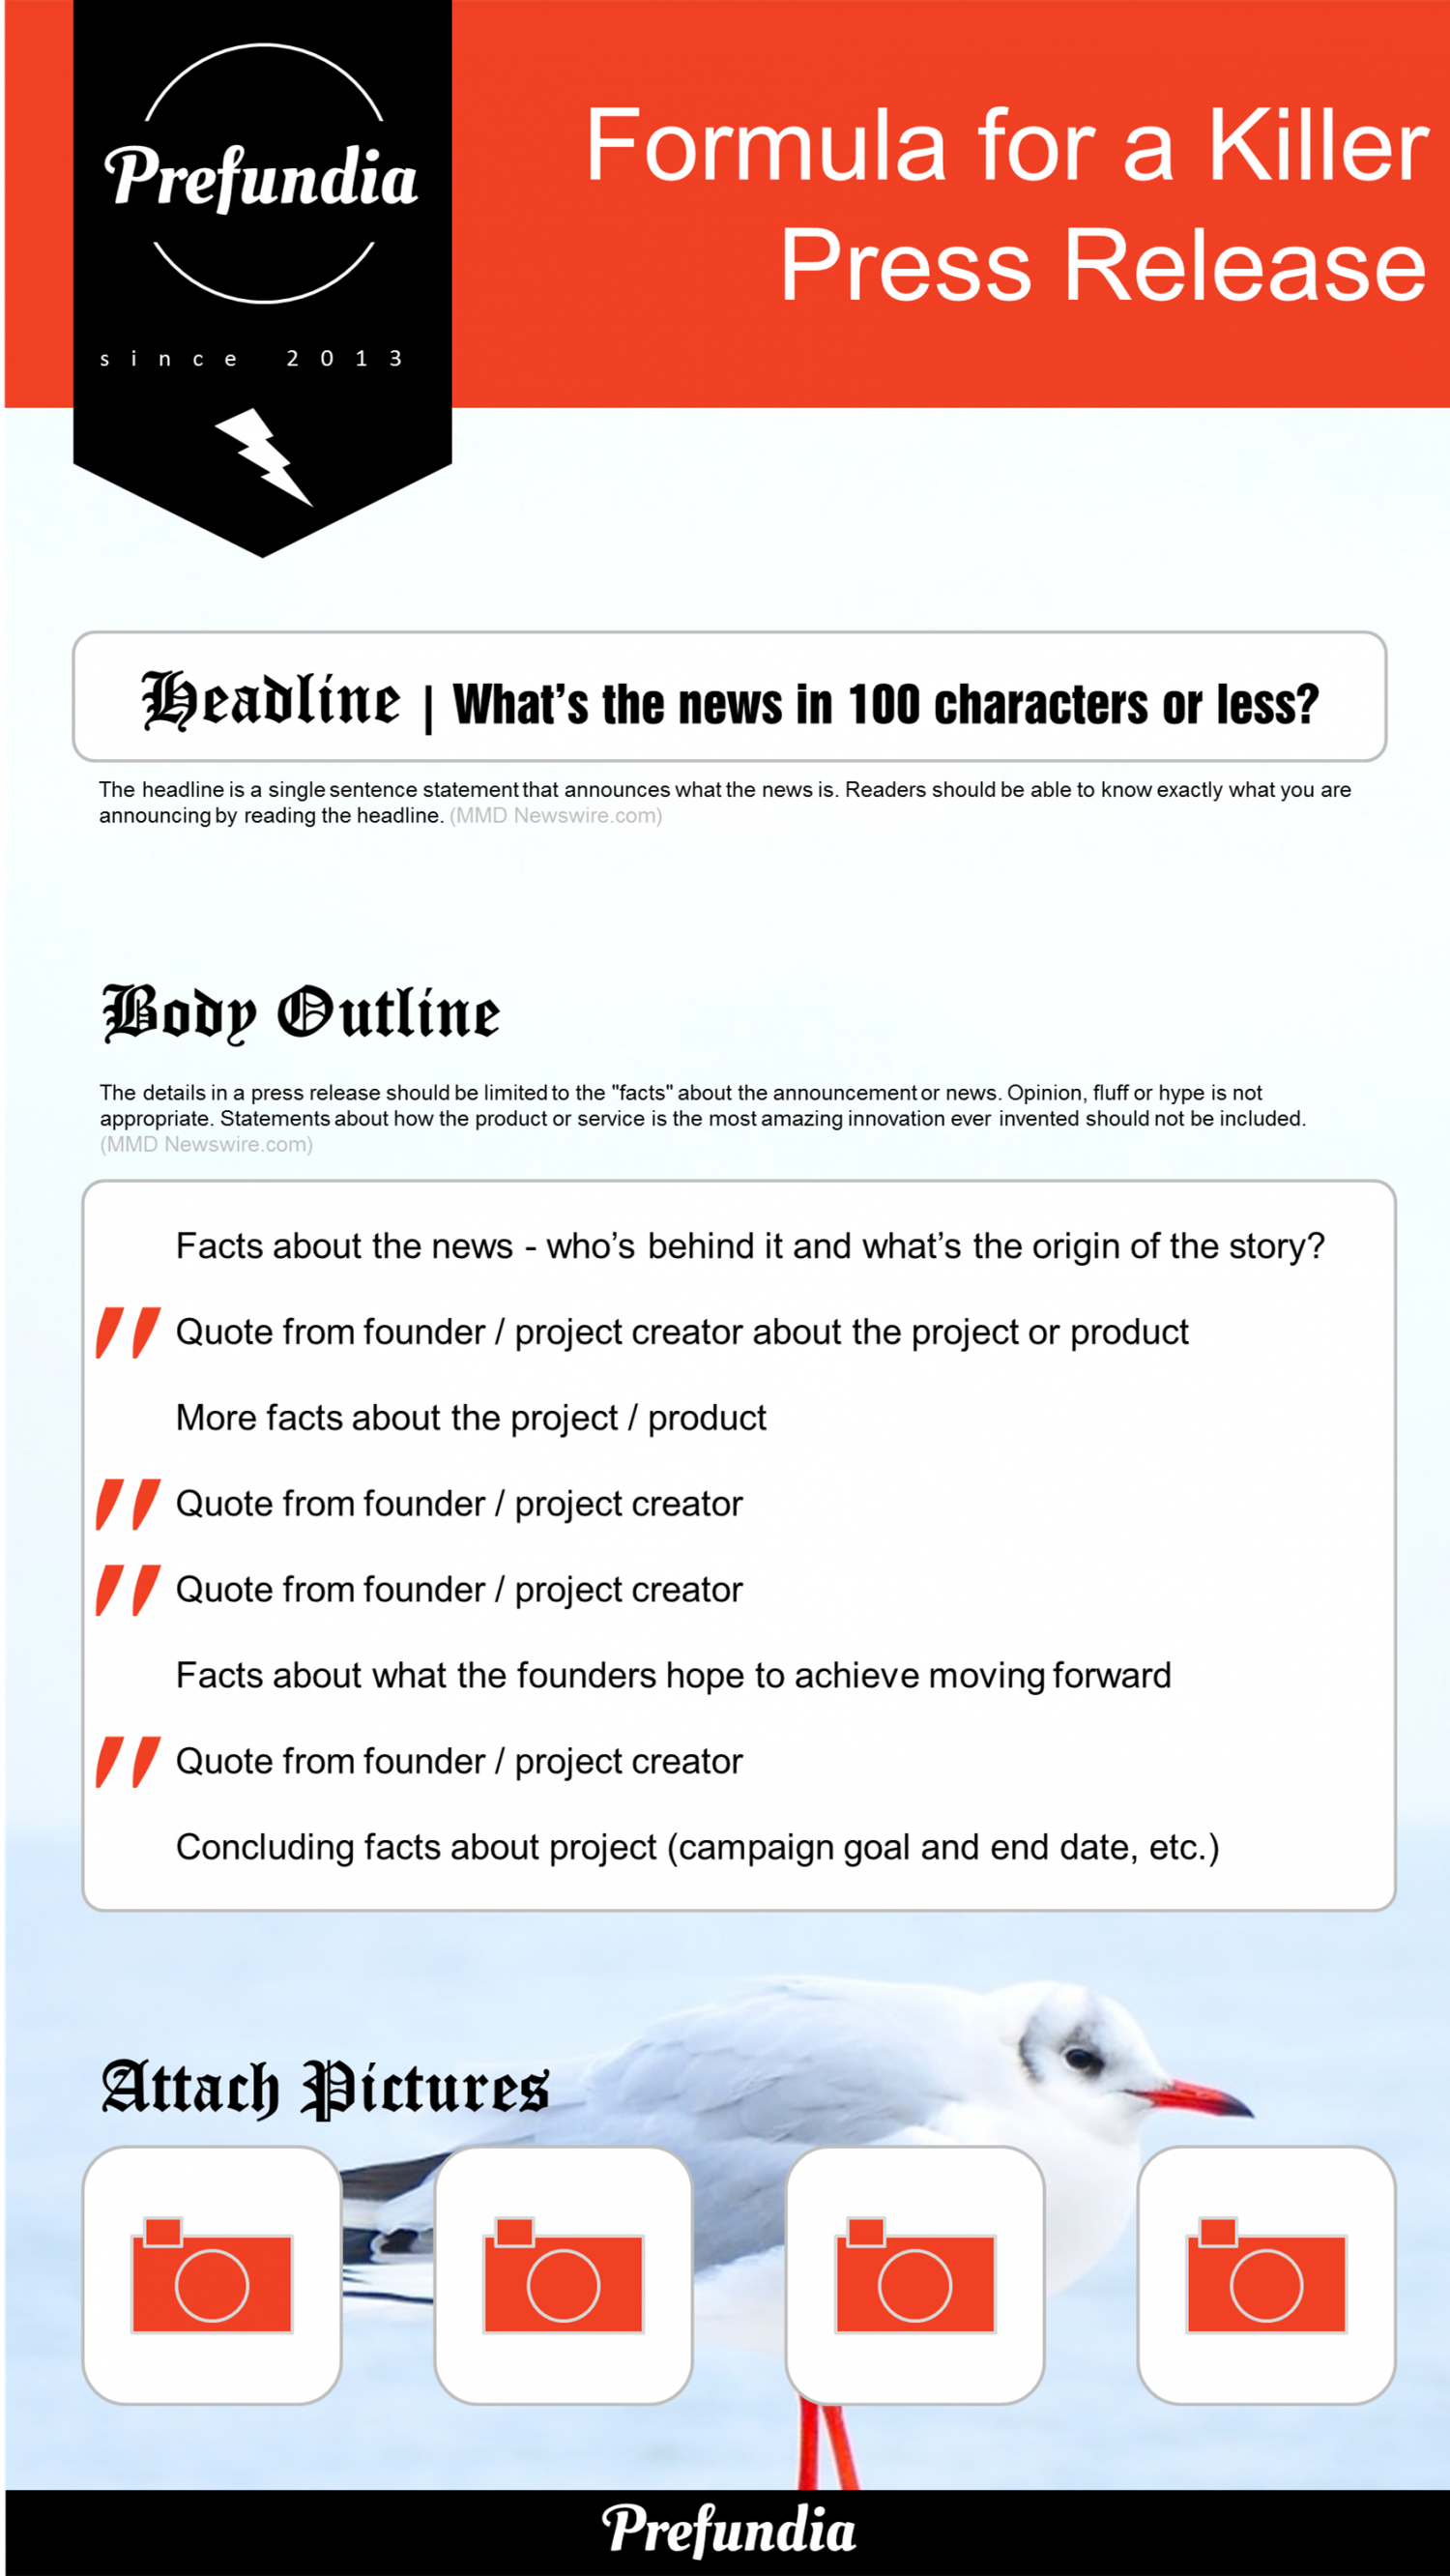 Formula for a Killer Press Release Infographic